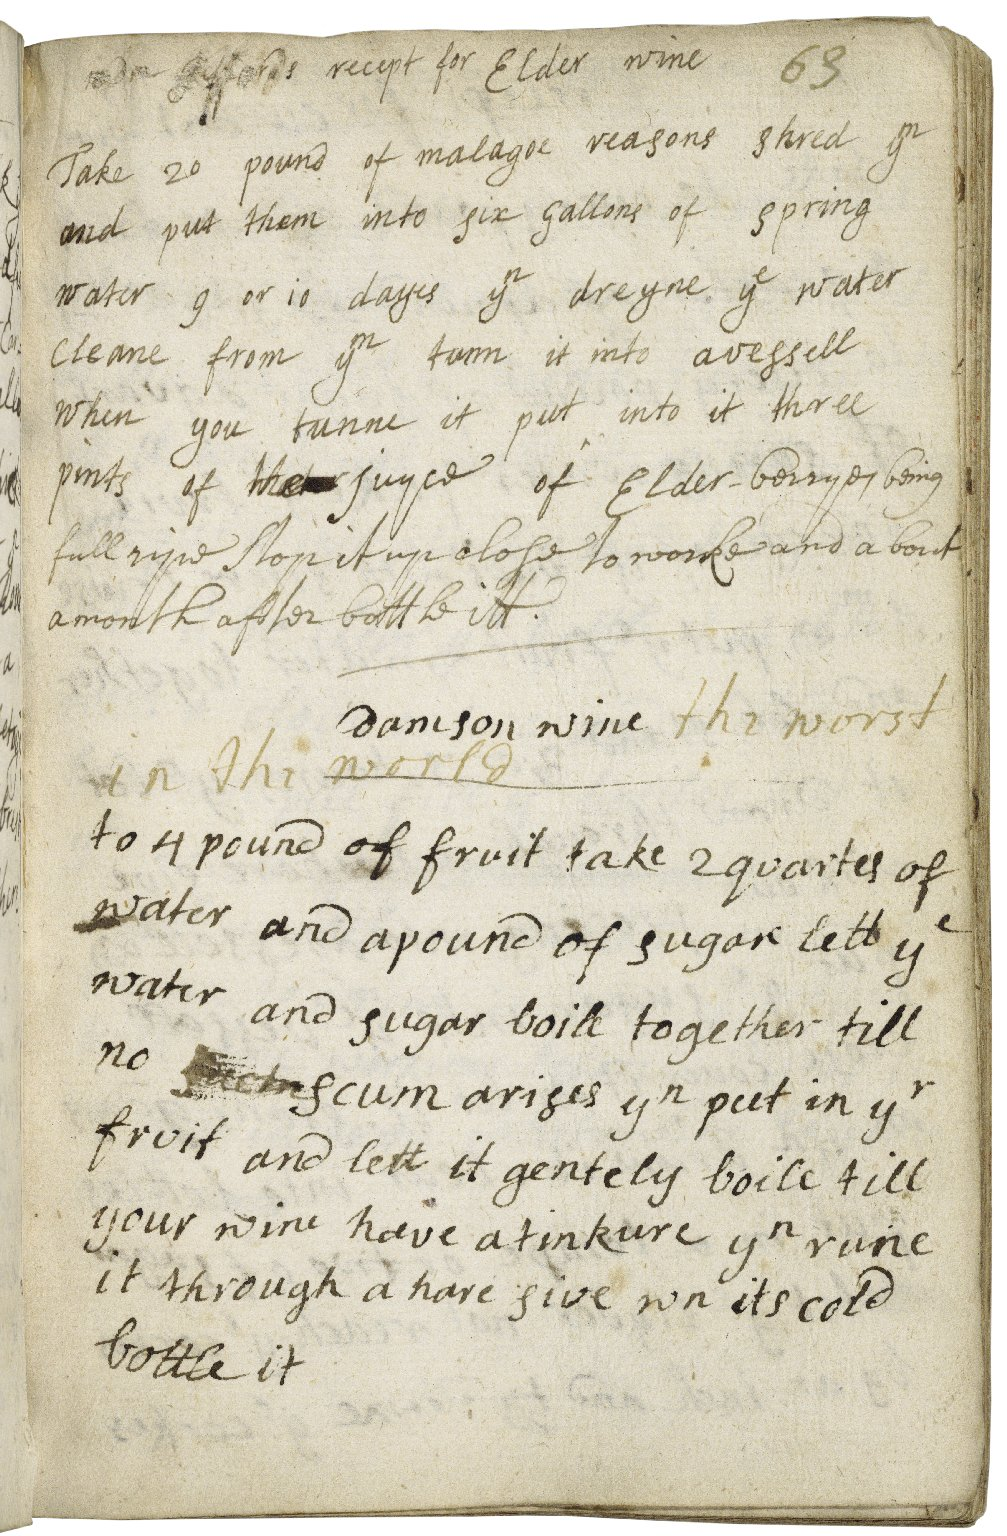 Century Recipe Collection Of Lady Vere Wilkinson One Many Books Recipes And Remedies Being Transcribed By Our Shakespeares World Volunteers